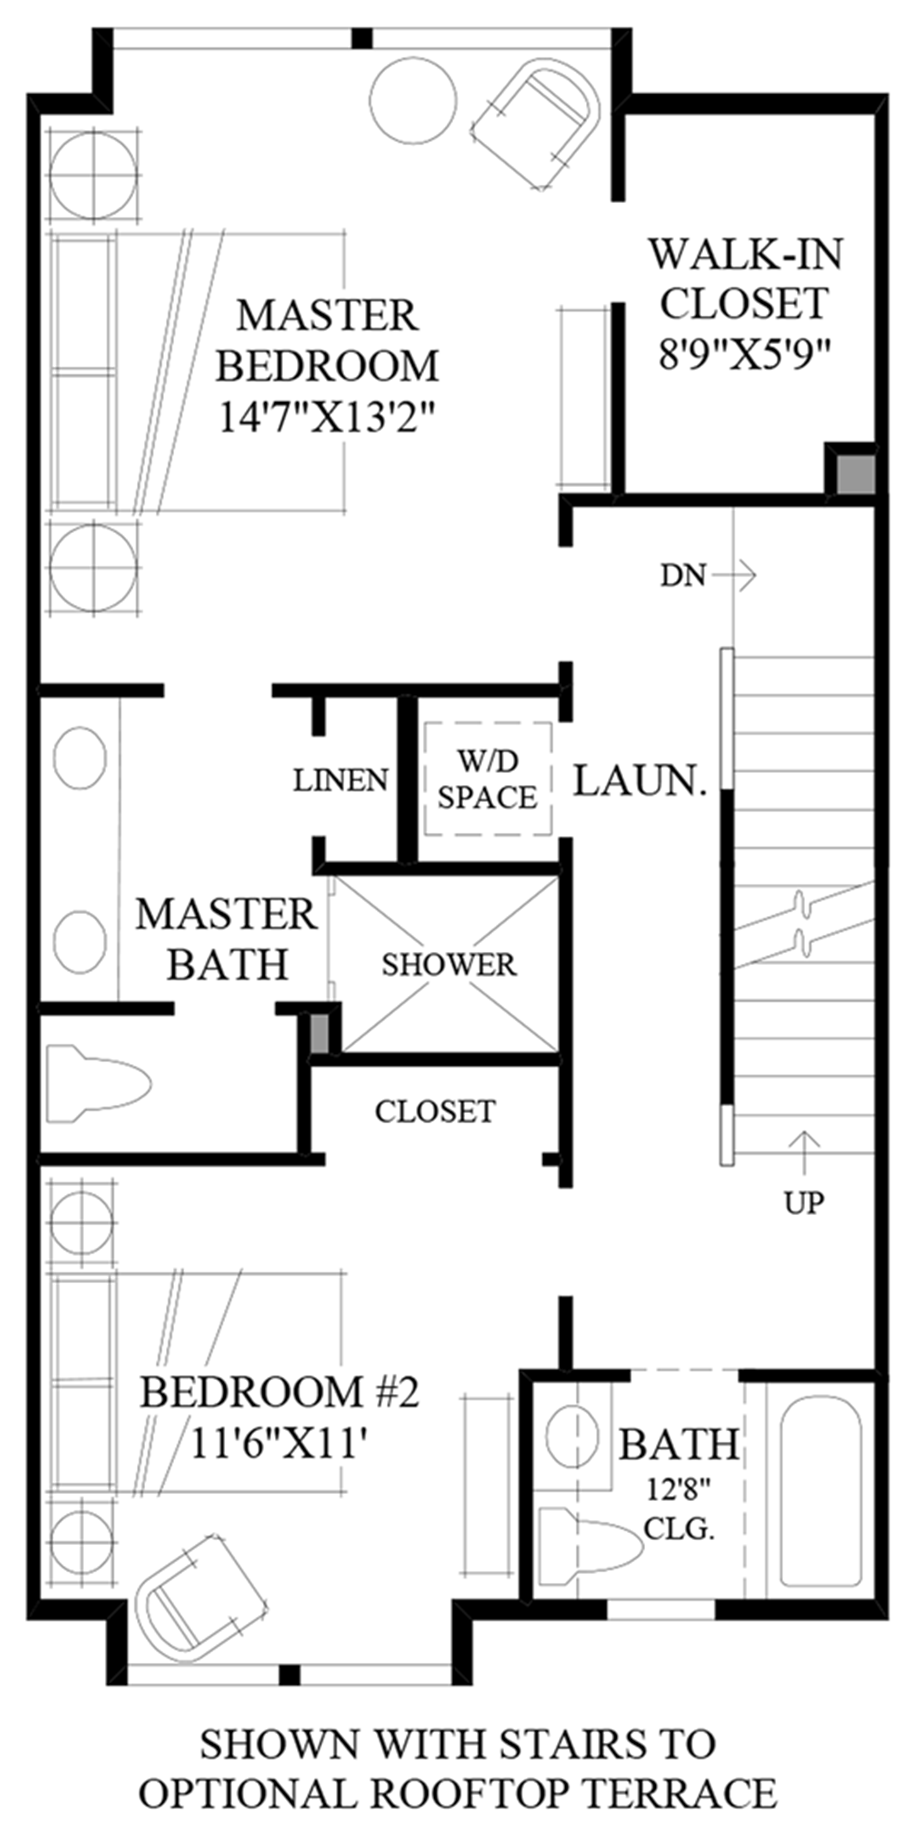 Stairs to Optional Rooftop Terrace Floor Plan